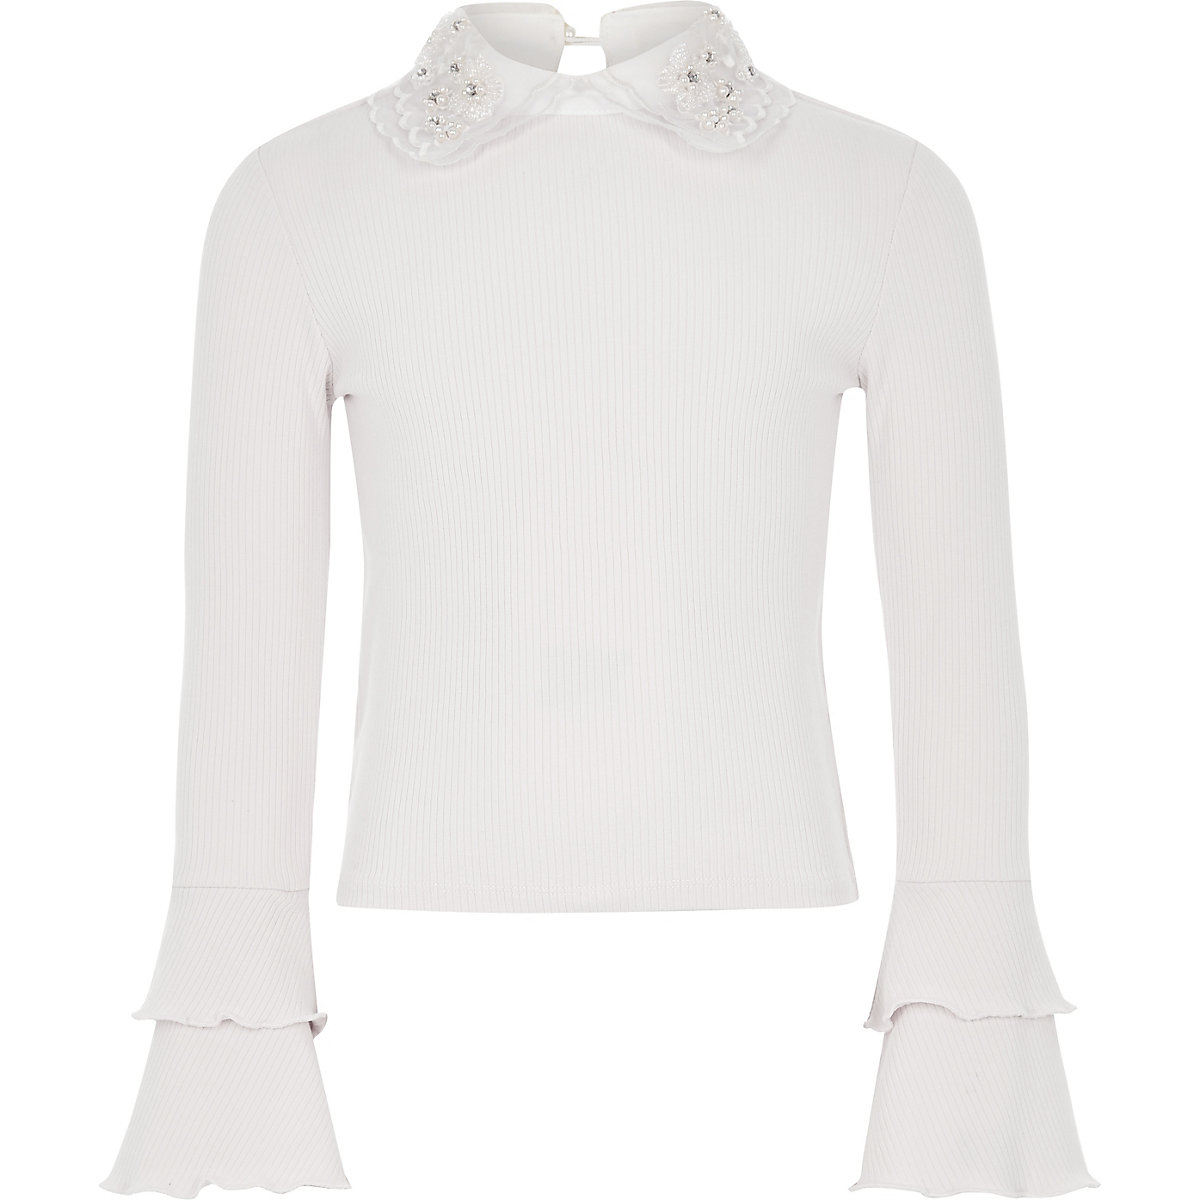 Girls cream embellished collar frill top